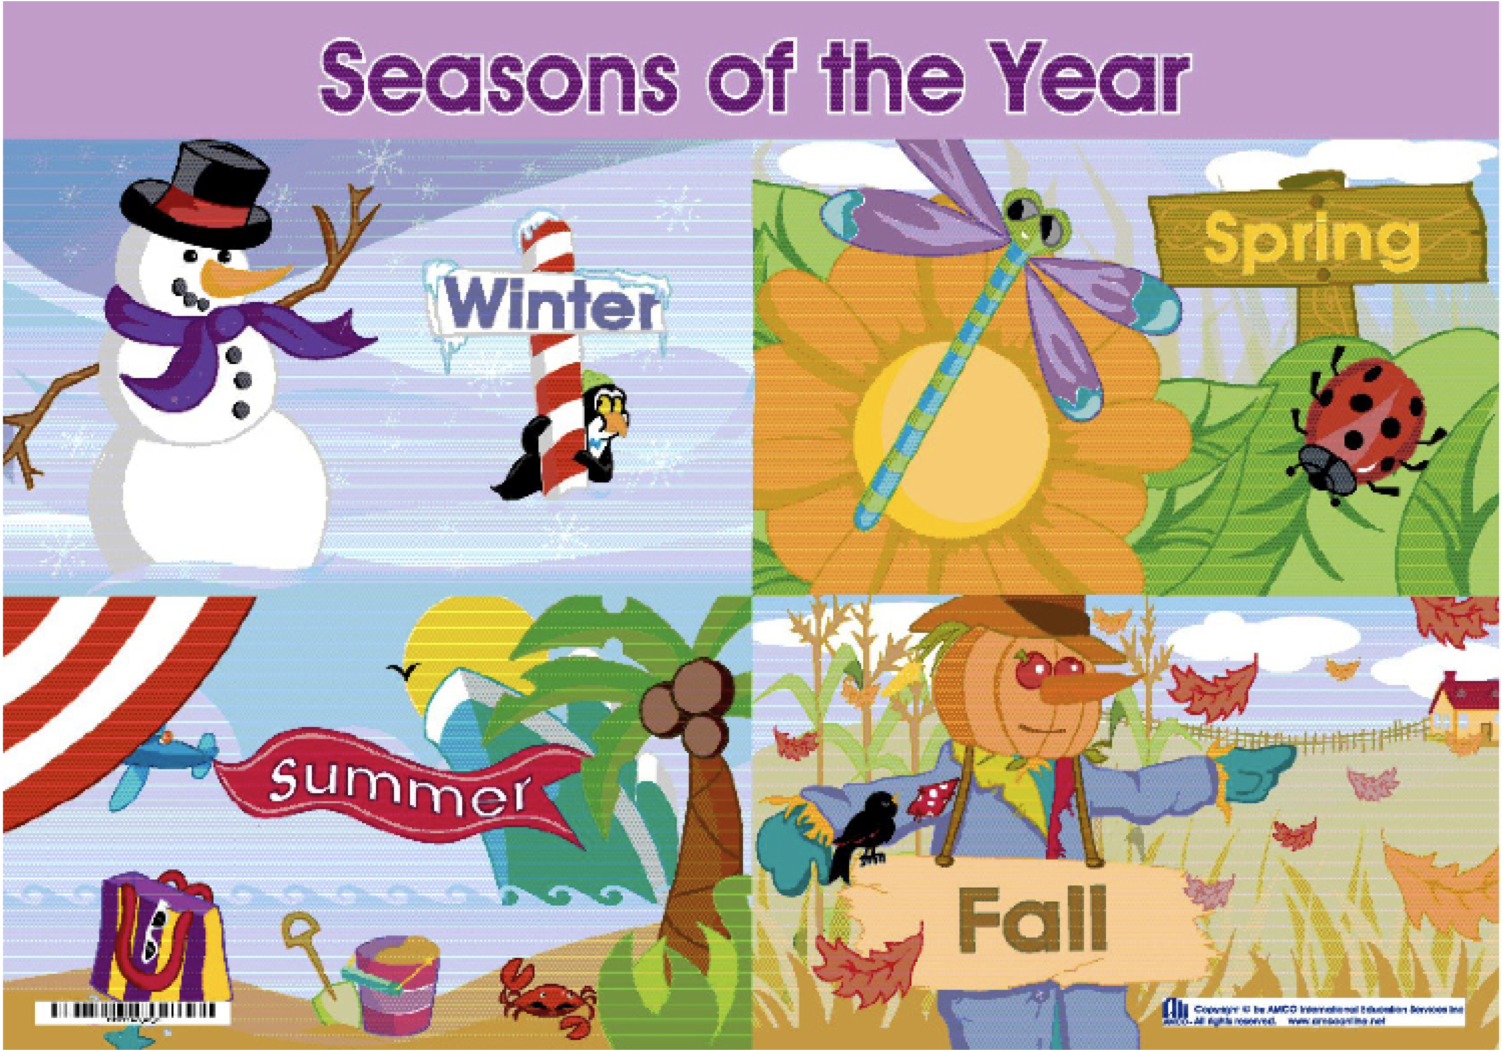 4 seasons of the year drawing